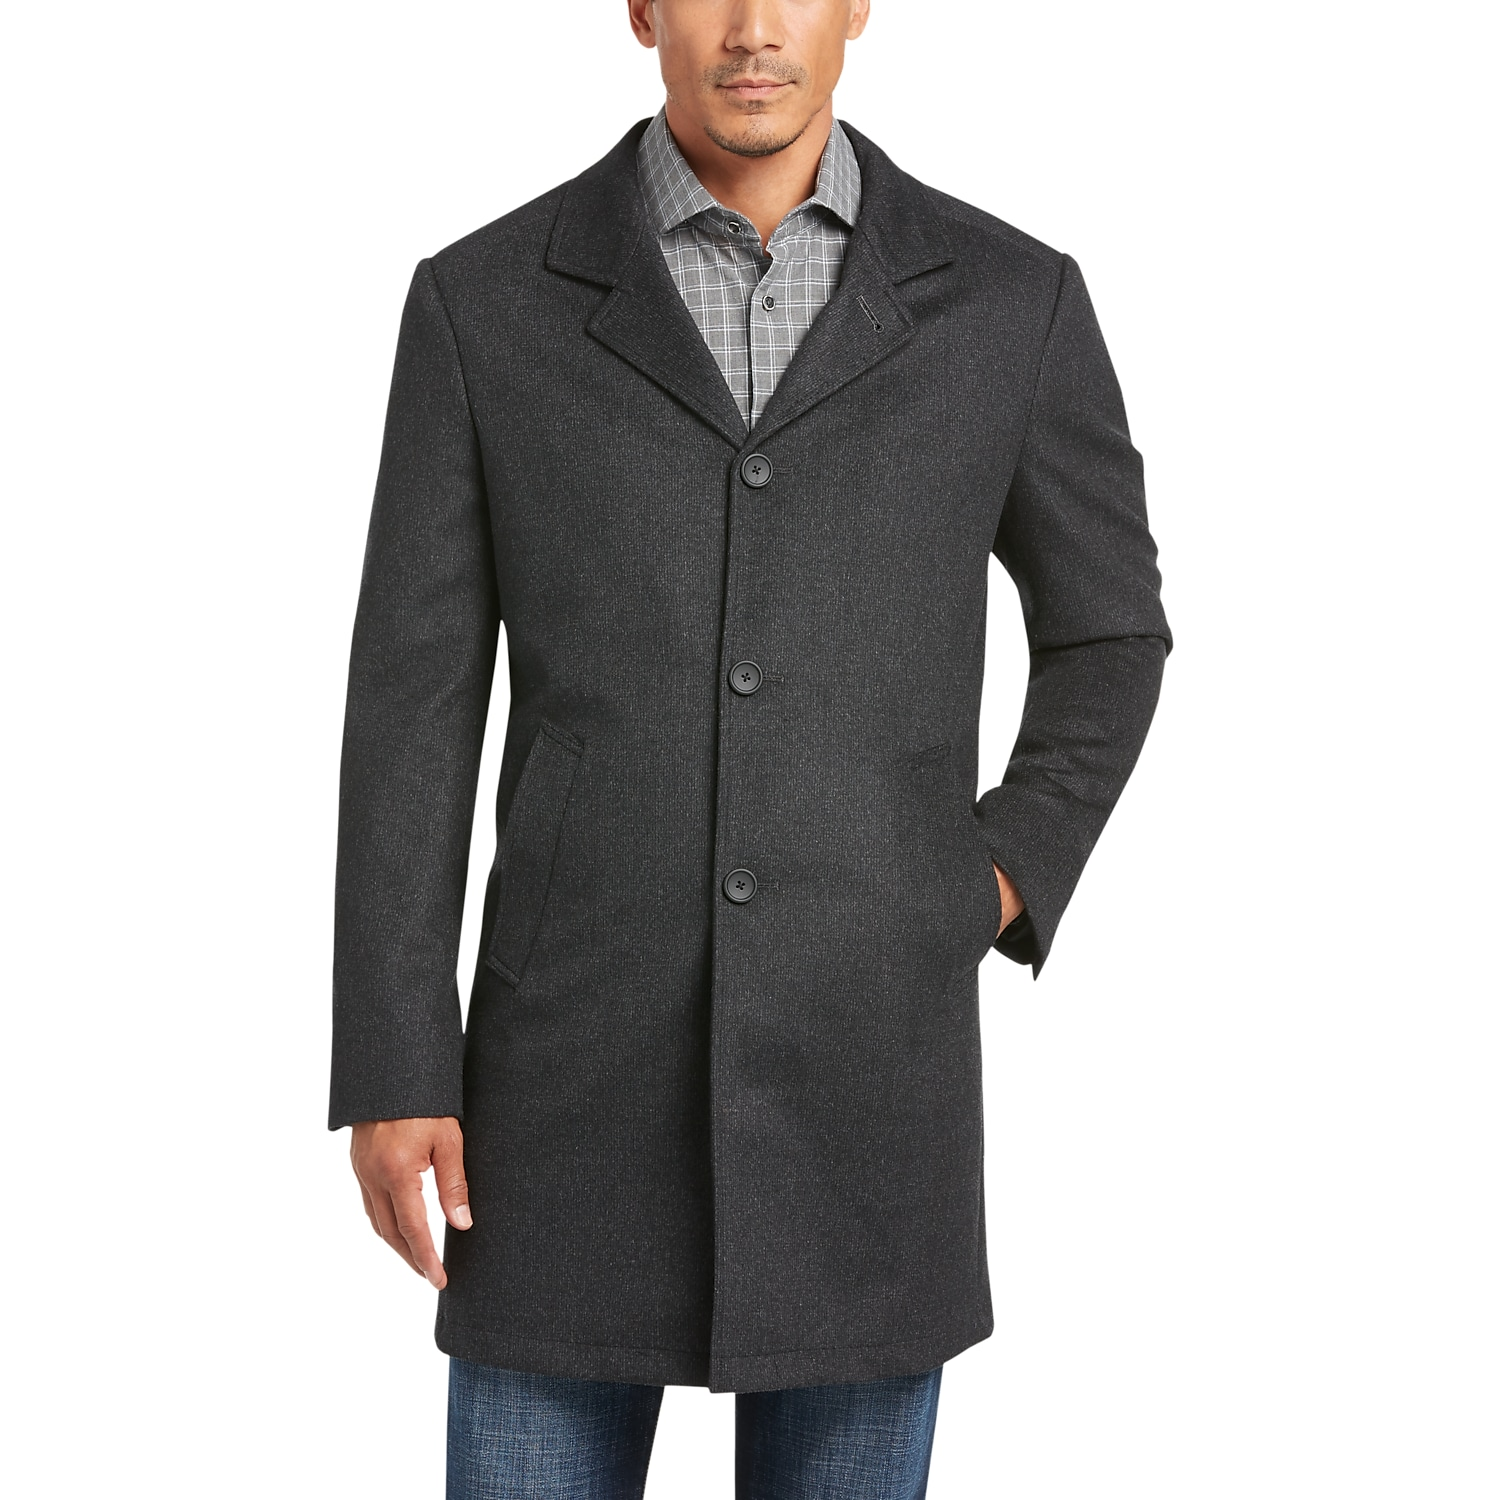 646cfd26b Mens Outerwear - JOE Joseph Abboud Charcoal Tic Modern Fit Car Coat - Men's  Wearhouse